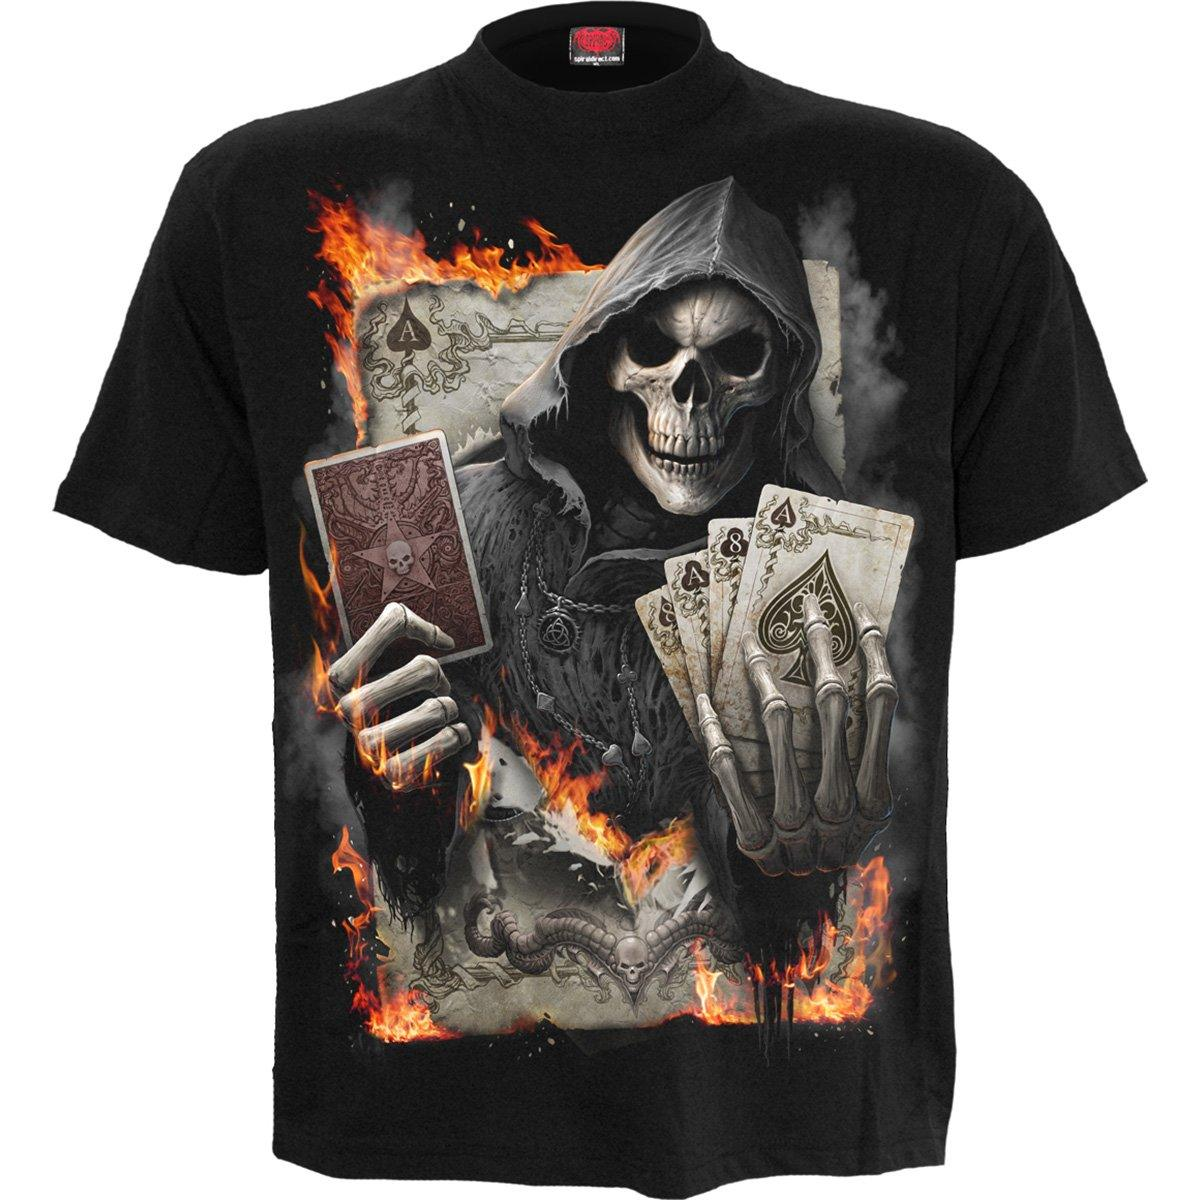 Gambling Grim Reaper Men's Black T-Shirt